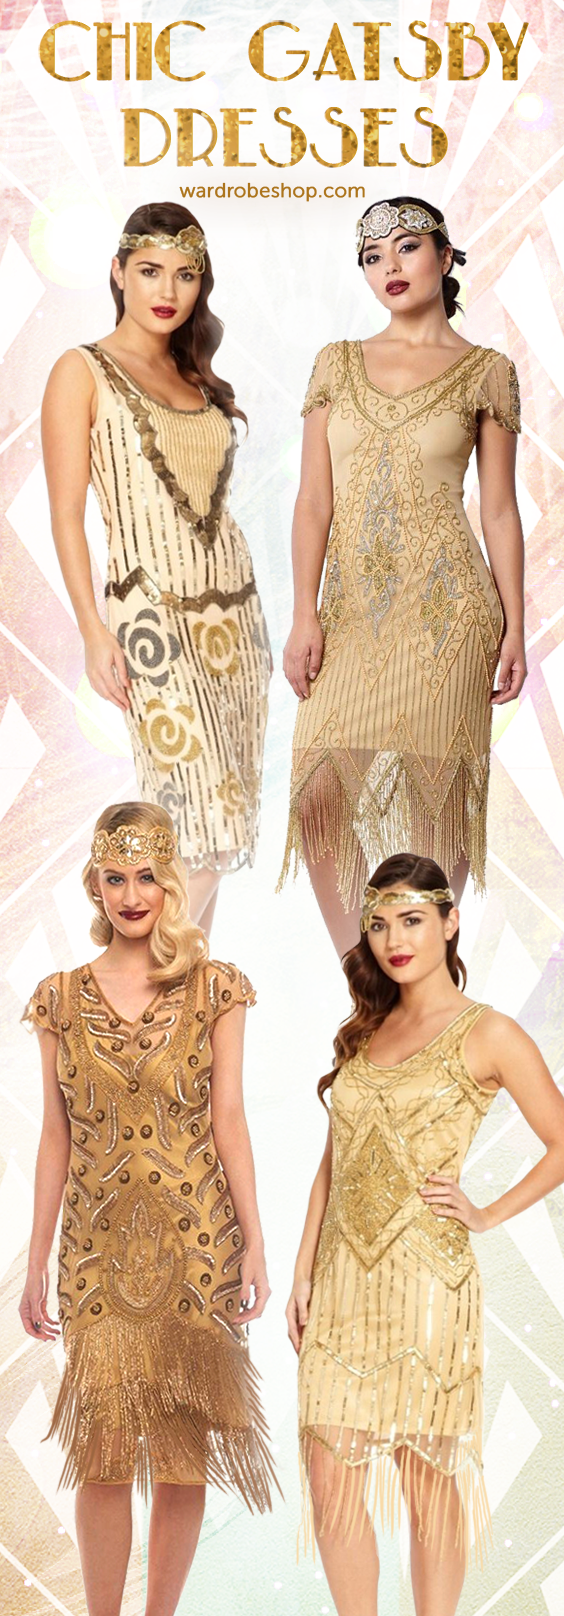 Great Gatsby Inspired Look 1920s Themed Party Vintage Style Outfit Roaring Twenties Re Great Gatsby Party Dress Gatsby Party Outfit Roaring 20s Outfits